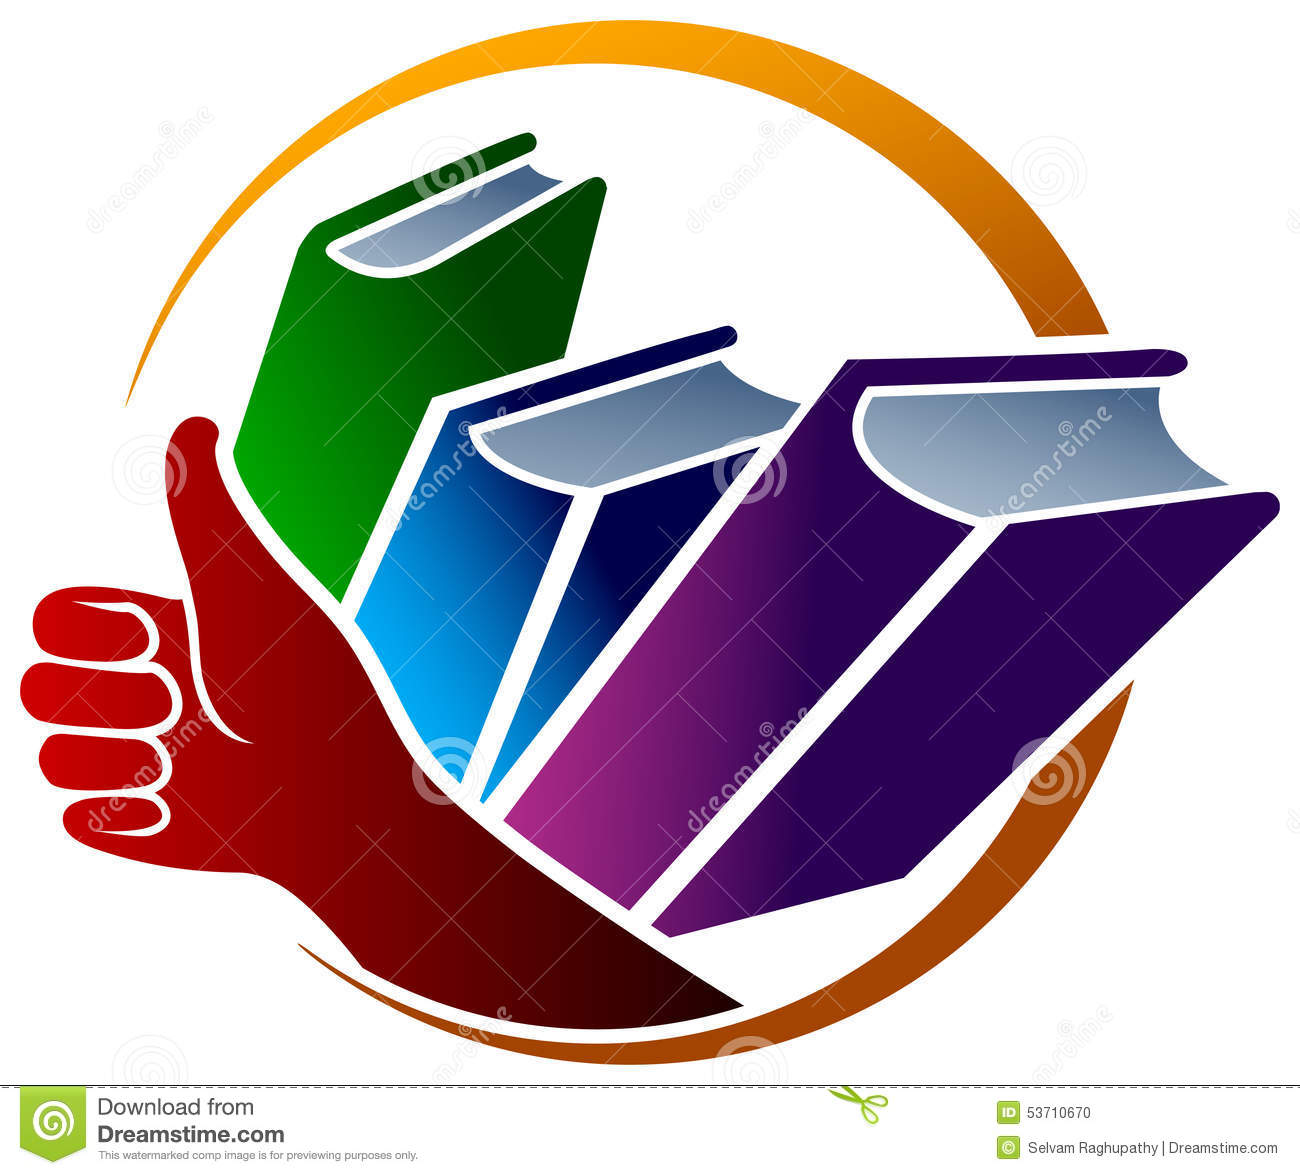 Books Logo Stock Illustration - Image: 53710670